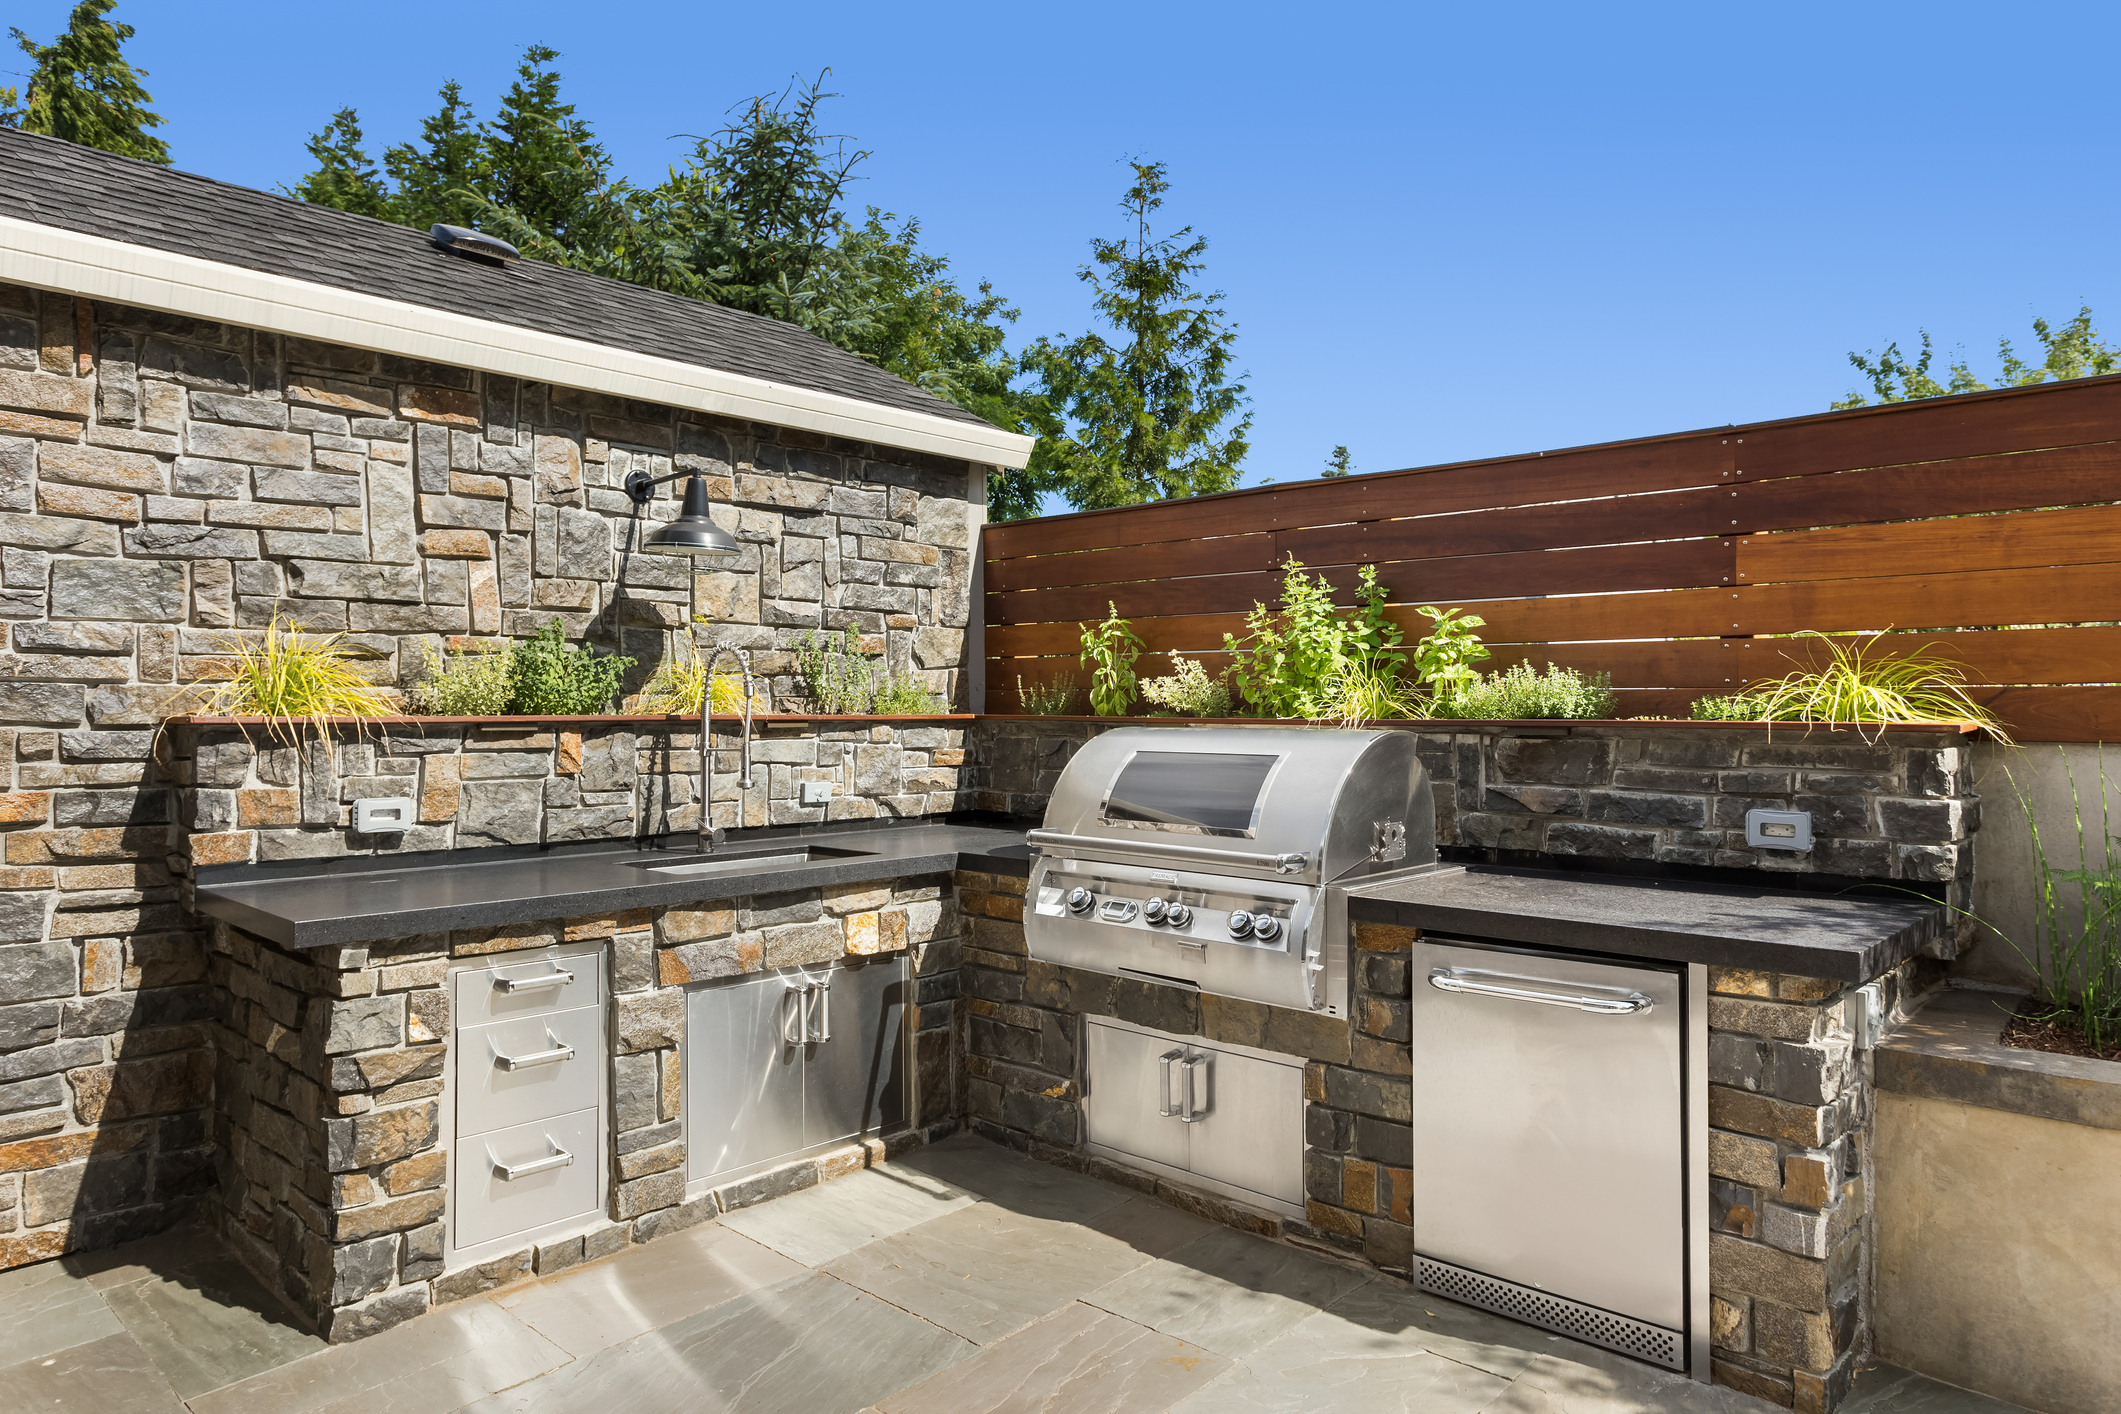 An outdoor kitchen with a sink, barbecue, and dishwasher.